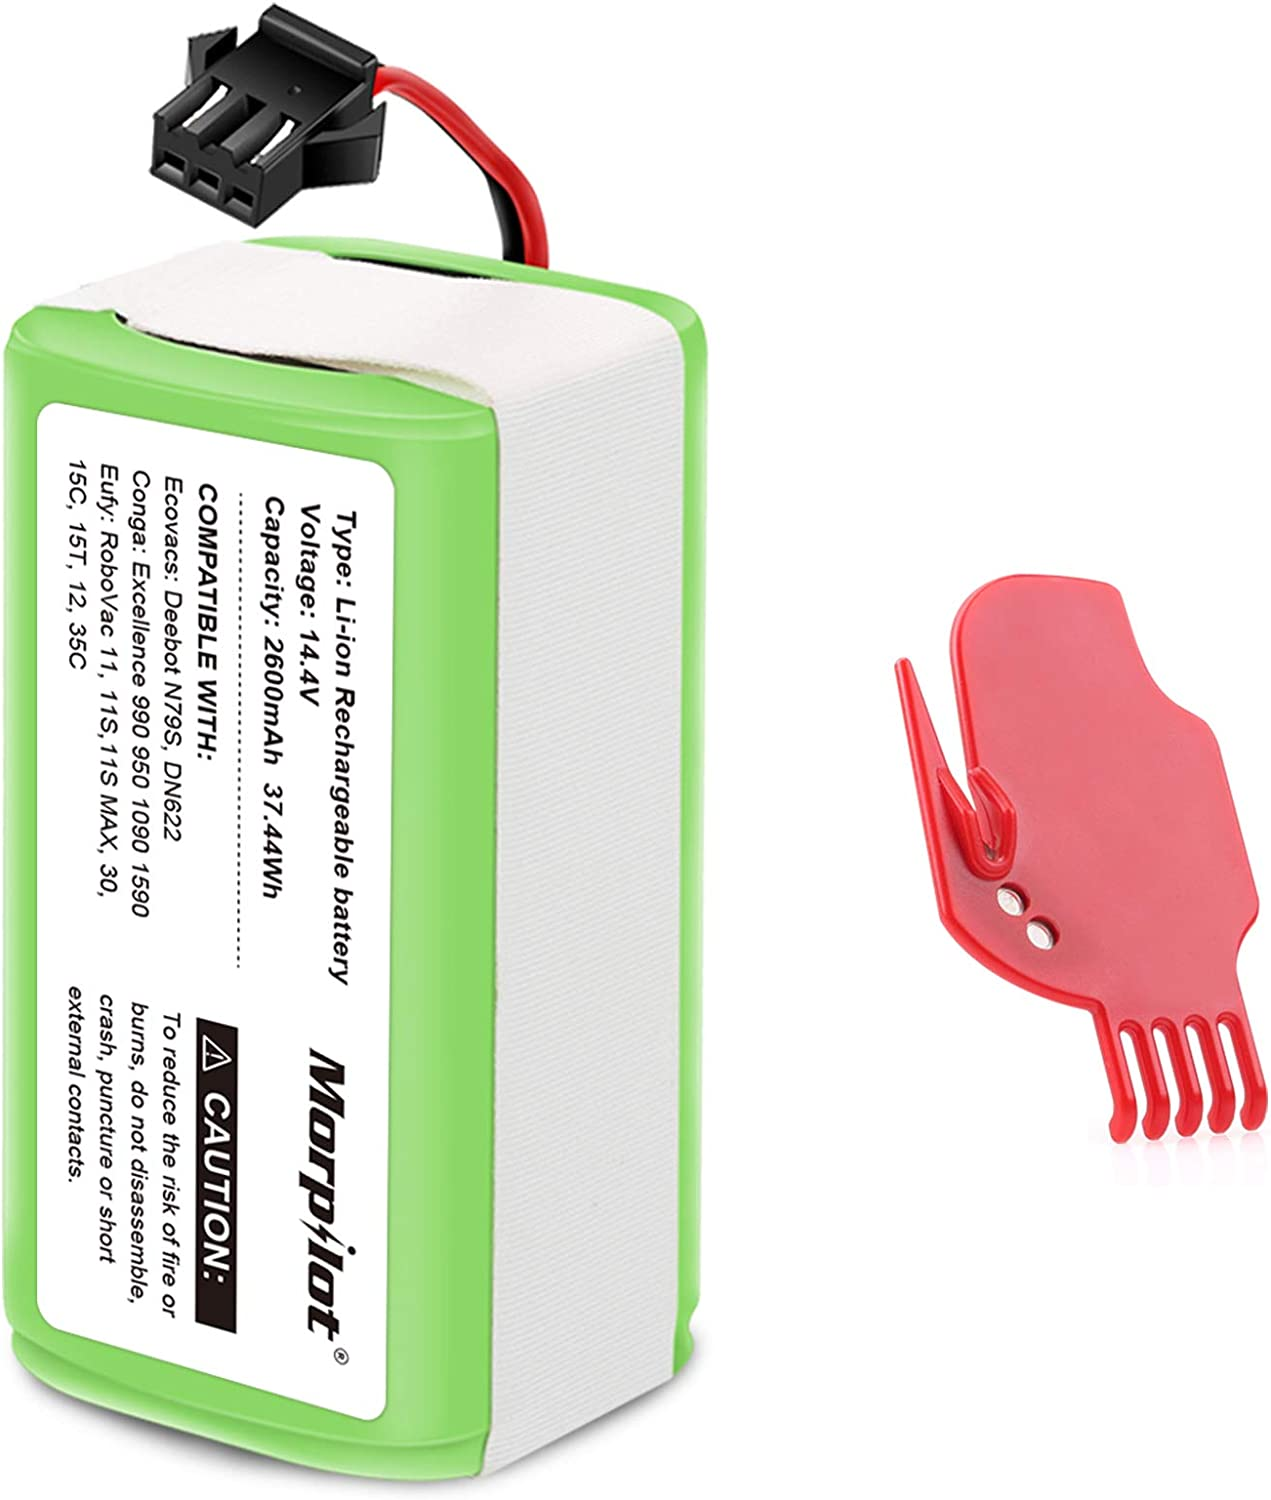 morpilot Batería 14.4V 2600mah Litio, Compatible con Conga Excellence y Conga Excellence 990 950 1090, DEEBOT N79S N79, Eufy RoboVac 11 11S 11S Max 15C 30C 30 MAX, IKOHS NETBOT S14 S15,